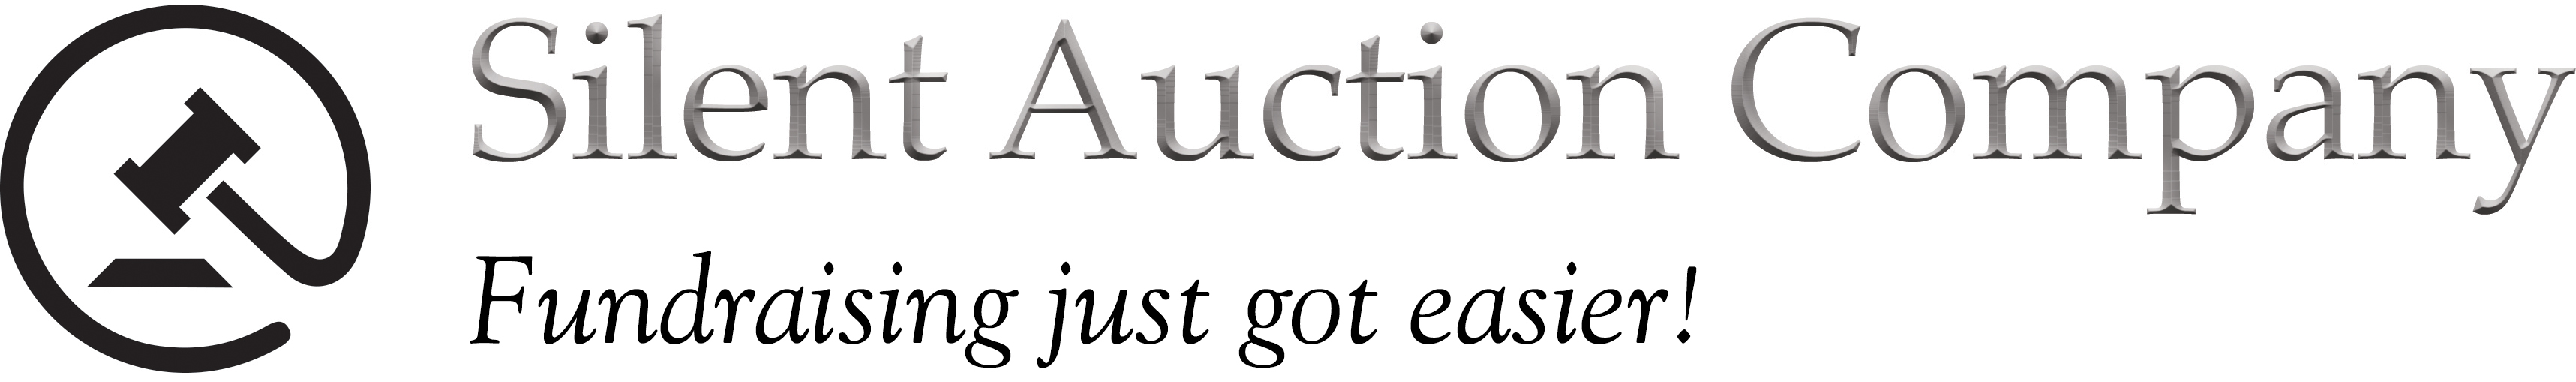 Silent Auction Company